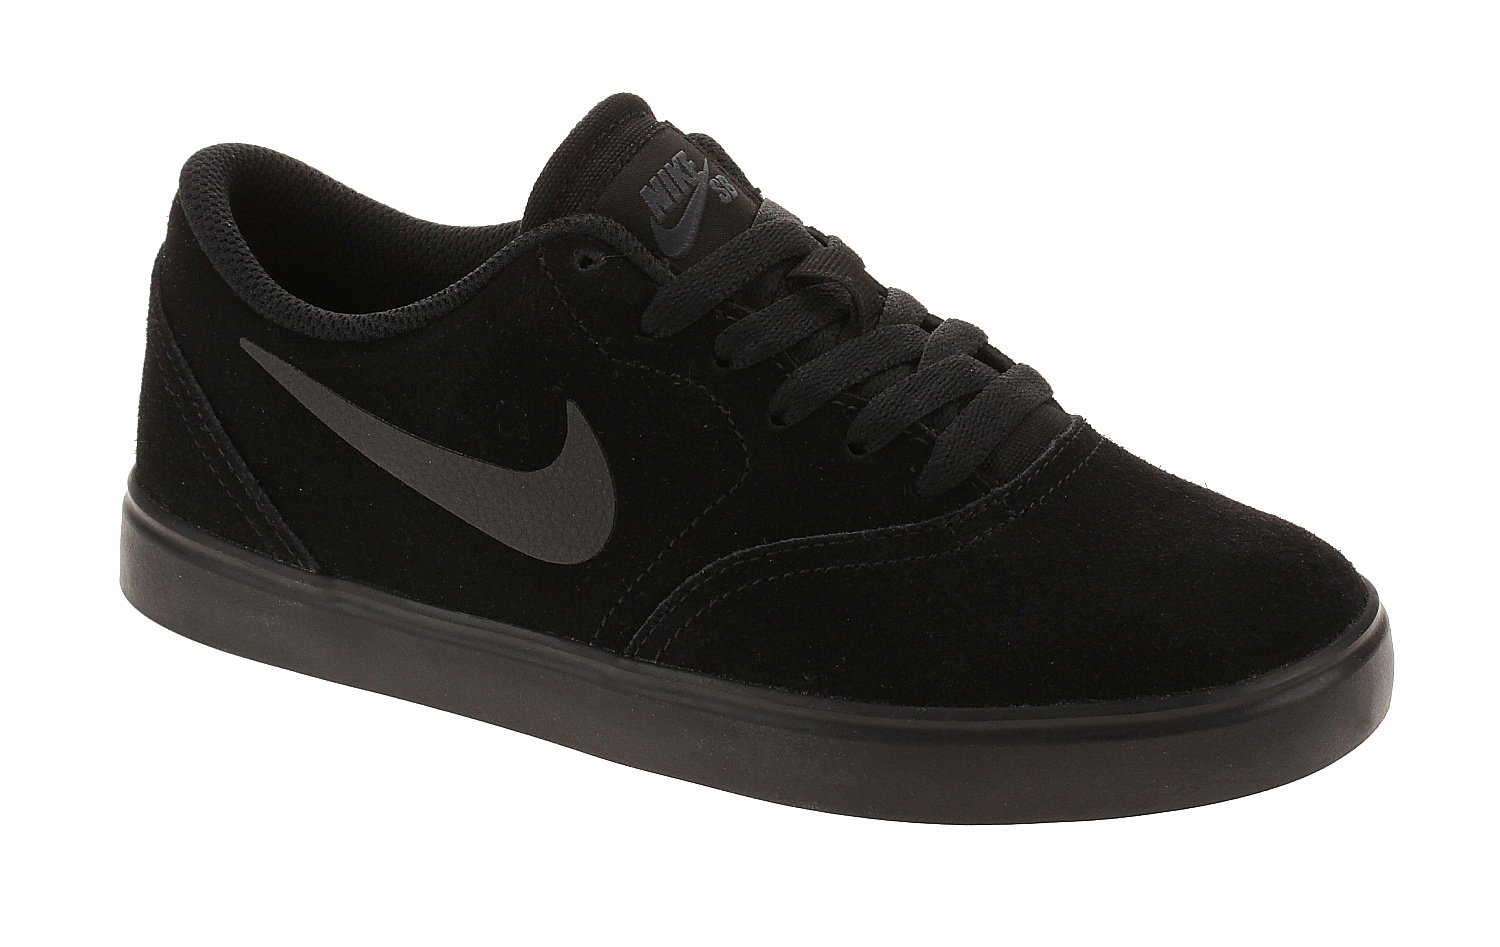 Medición Dificil cinta  shoes Nike SB Check Suede GS - Black/Black/Anthracite - unisex ...